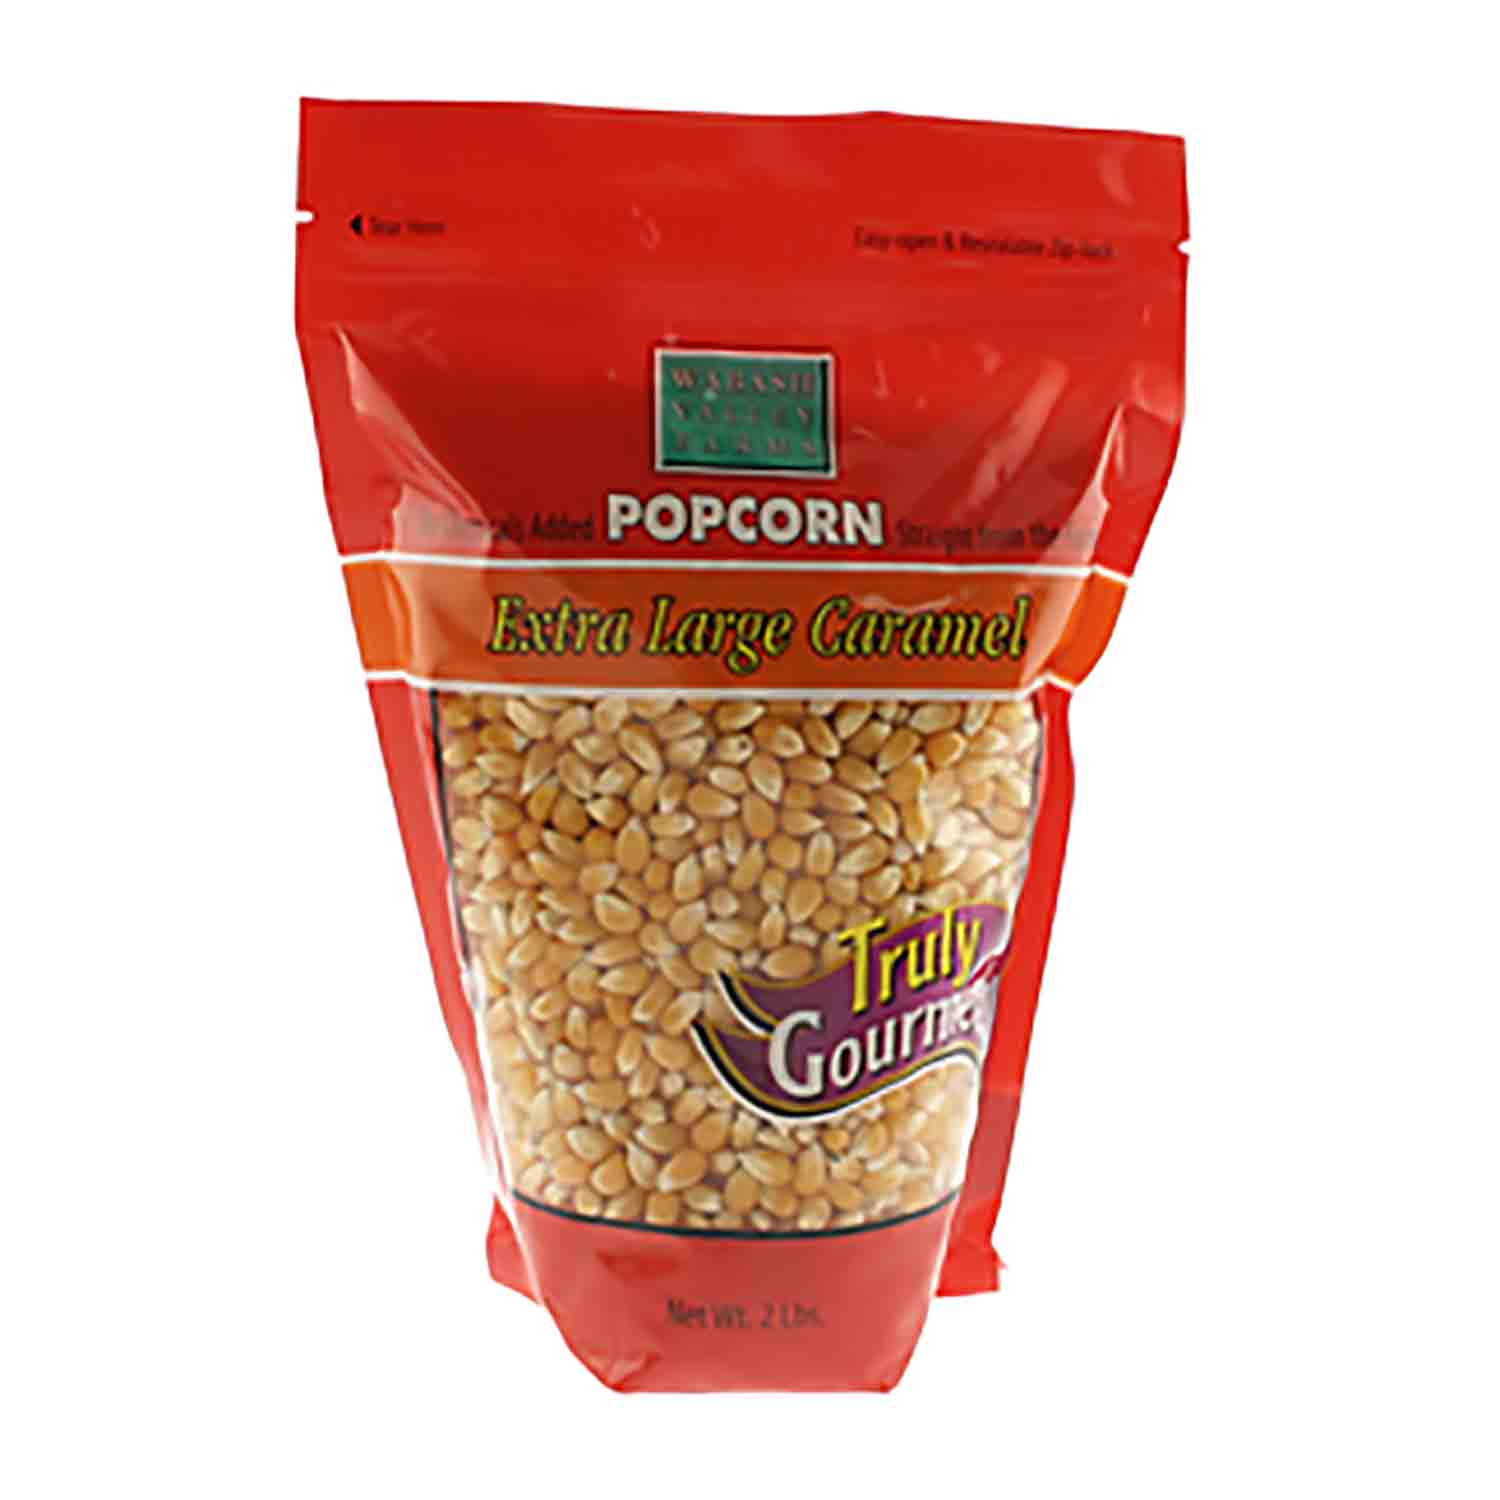 Popcorn Poppers and Popcorn